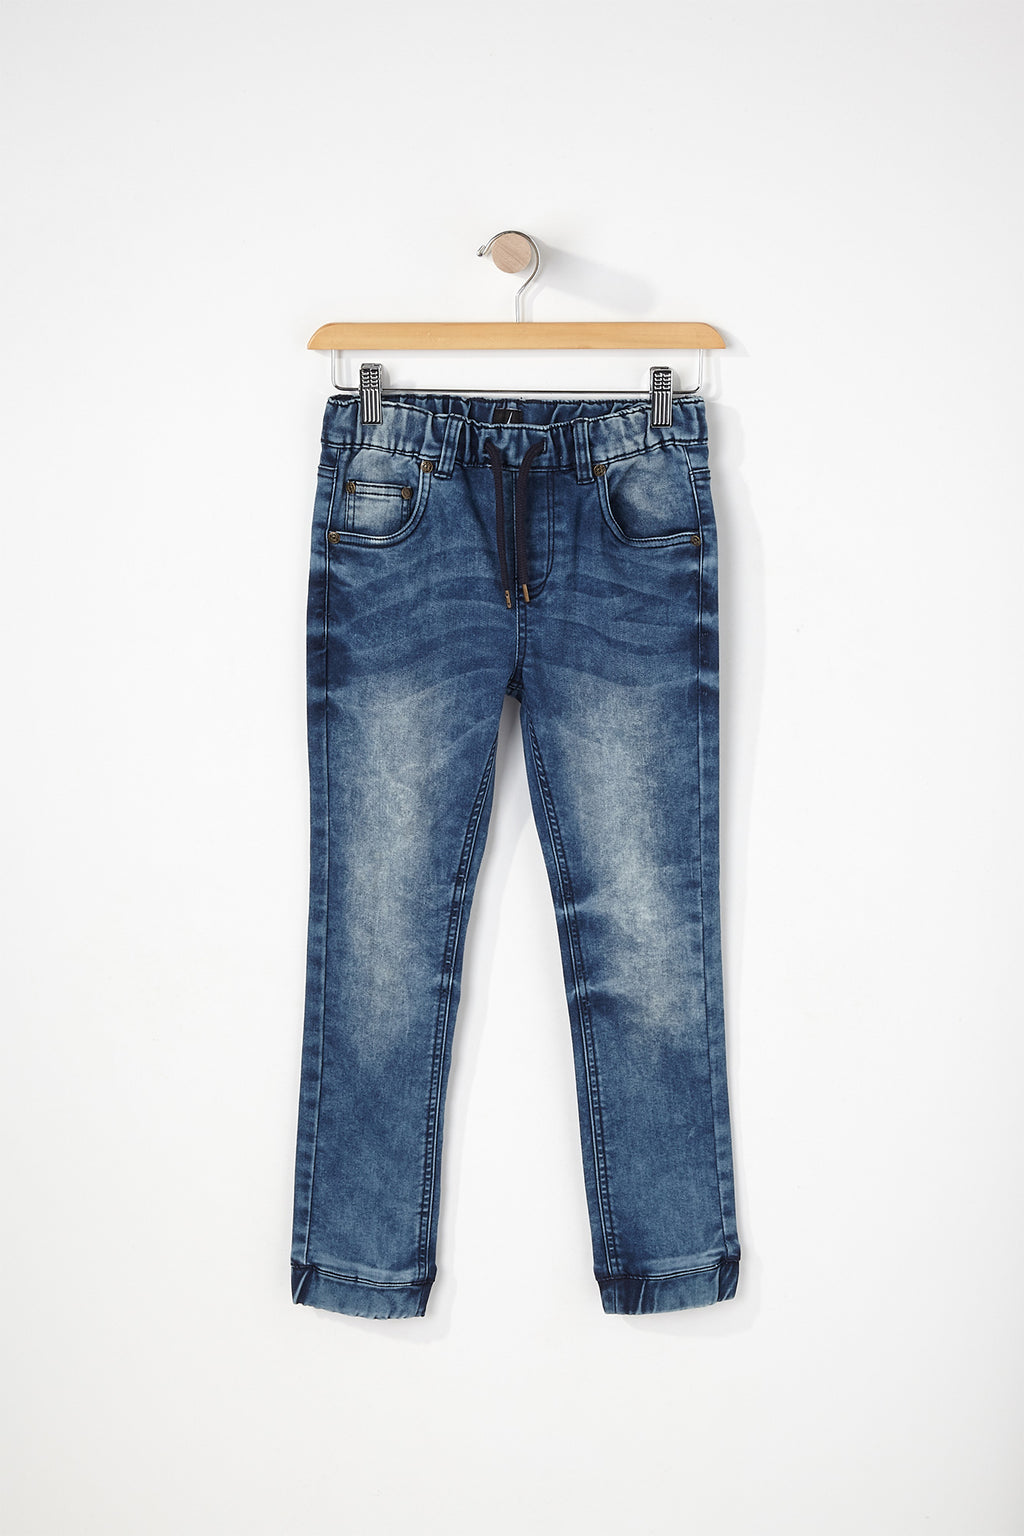 West49 Boys Light Wash Denim Jogger